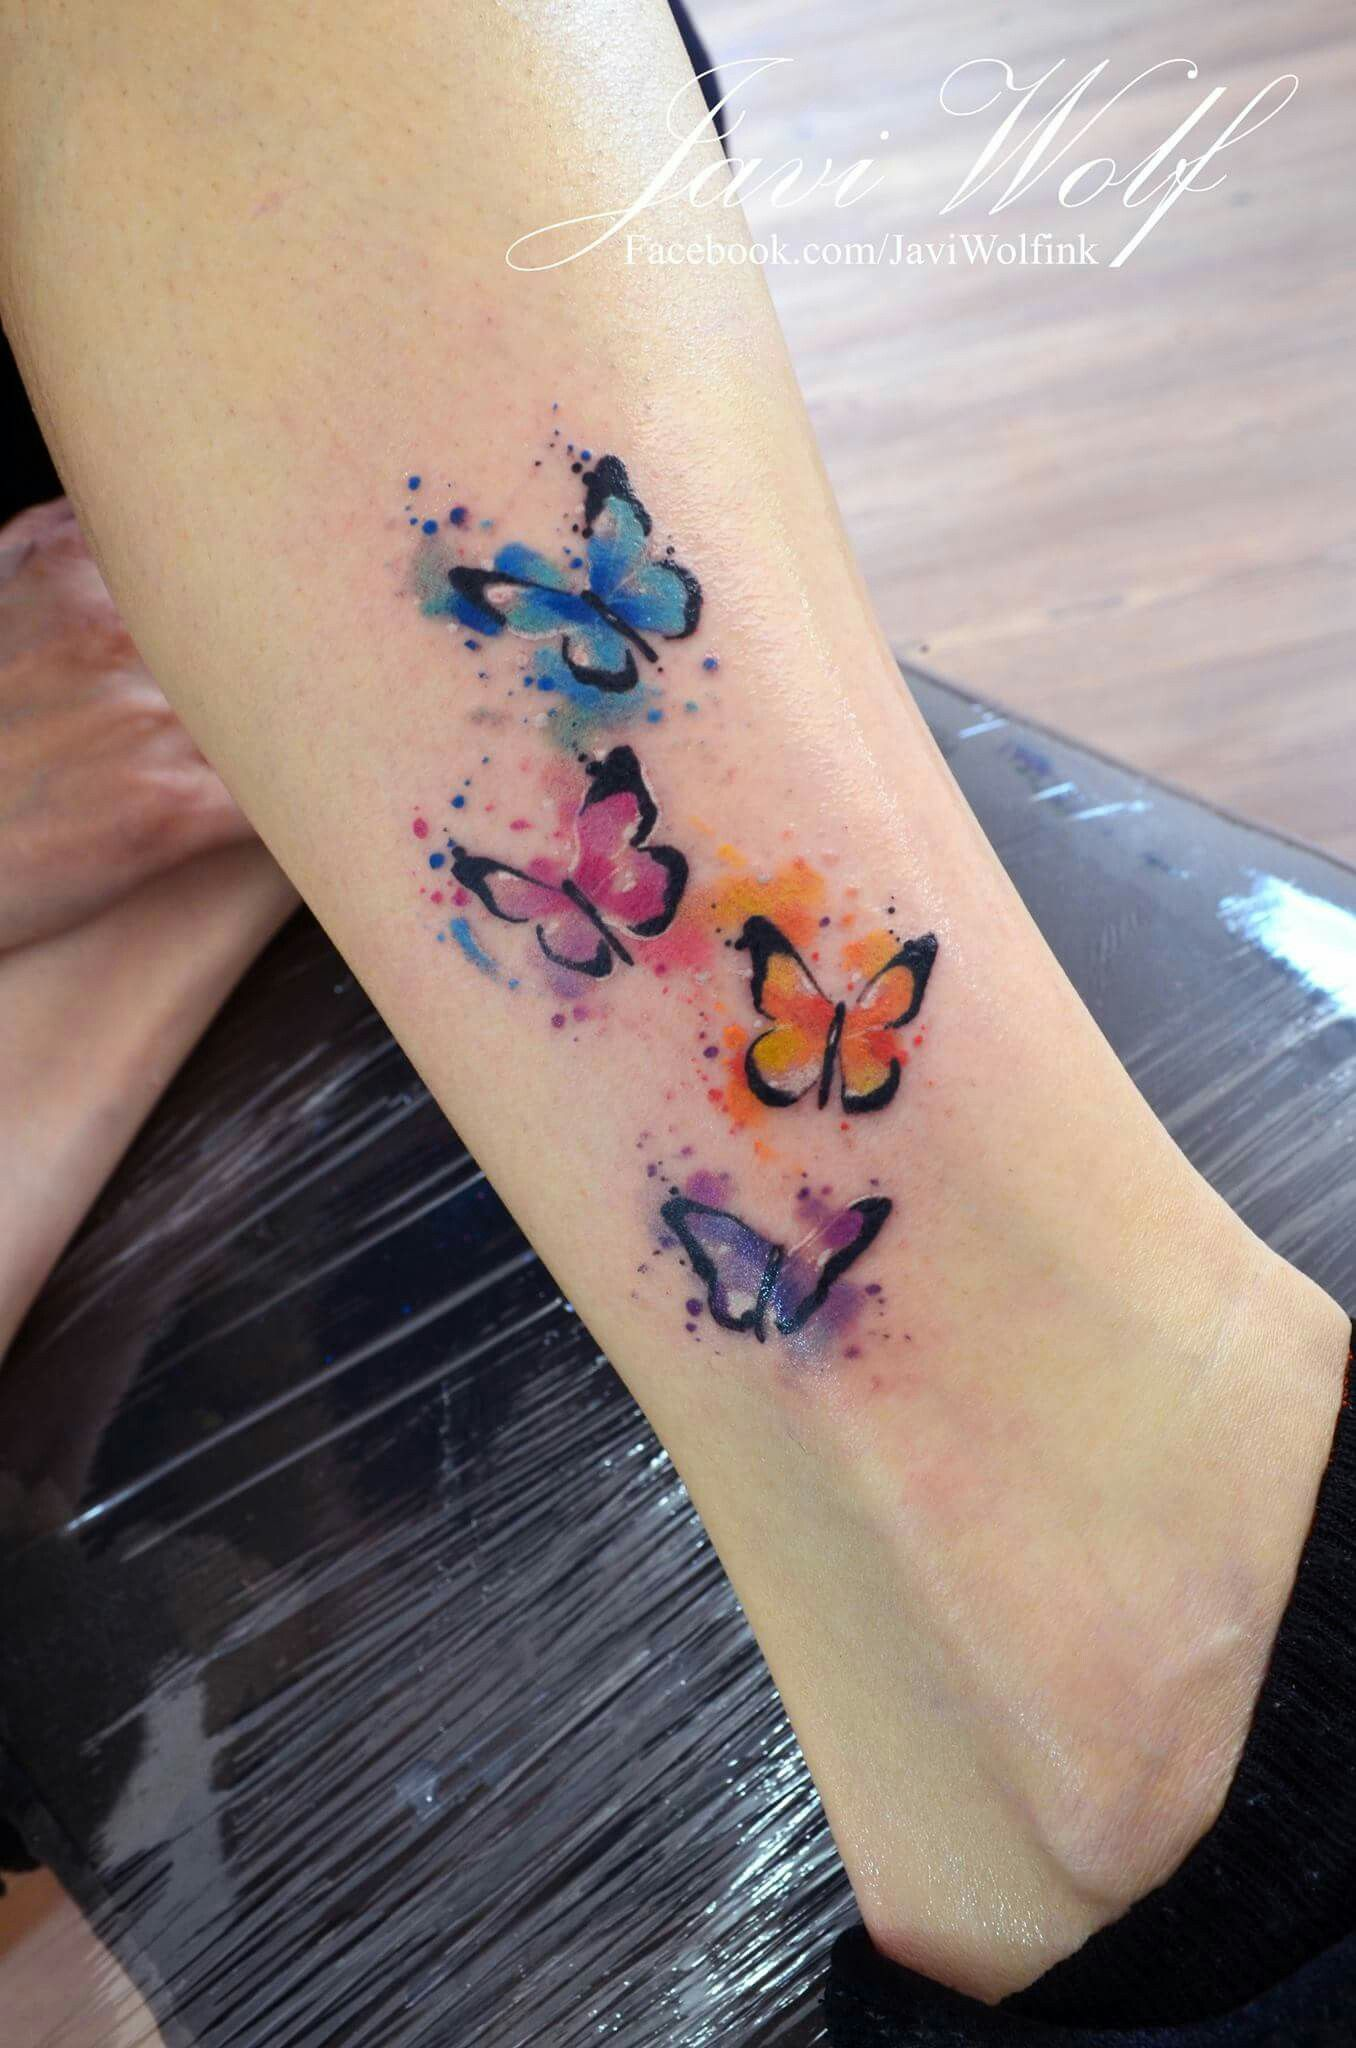 Javi Wolf Watercolor Butterflies Watercolor Butterfly Tattoo